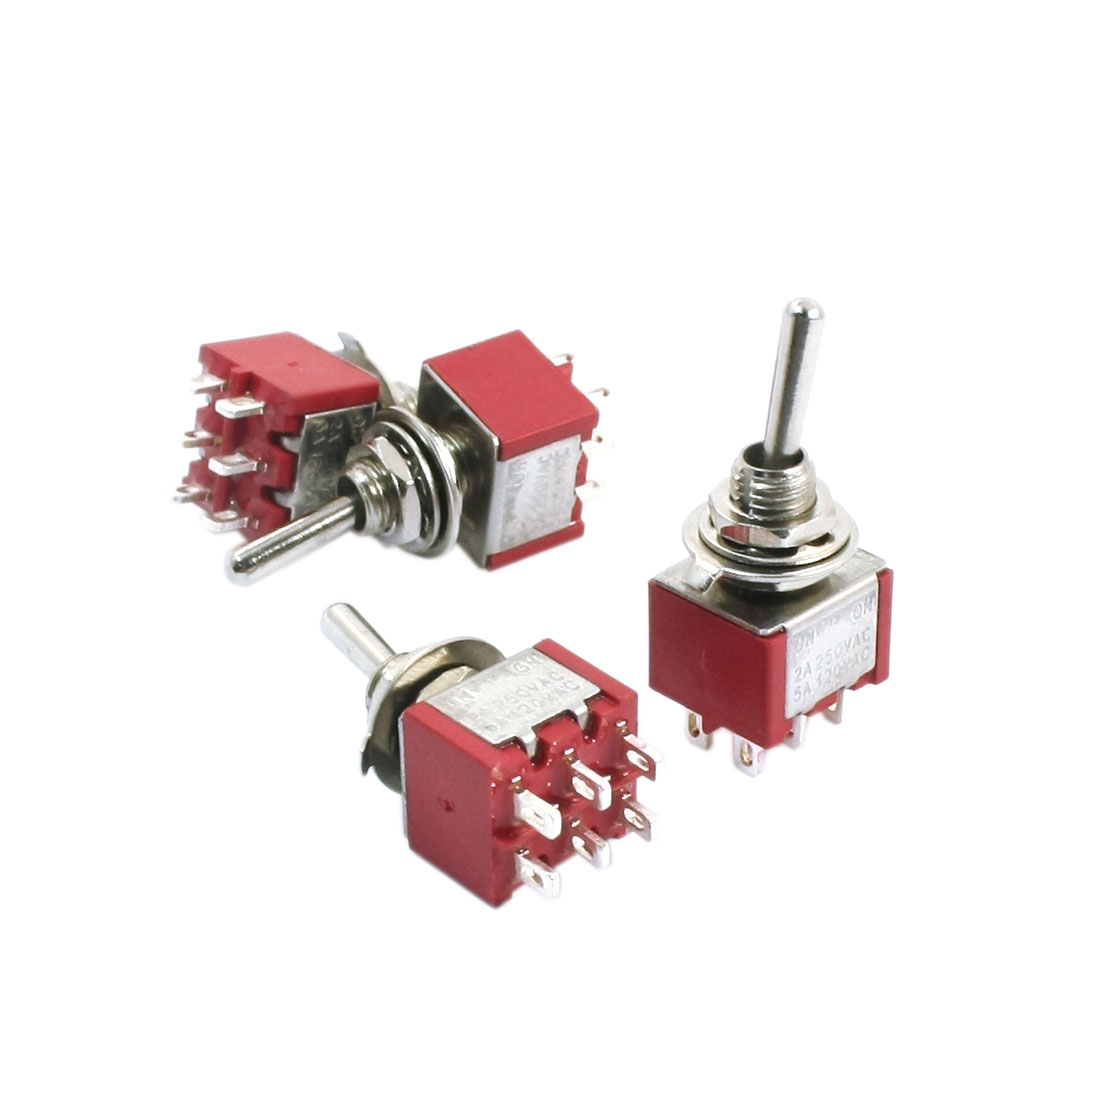 Spare Parts 6mm Panel Mounted ON/ON DPDT Toggle Switch AC 120V 5A Red 4pcs